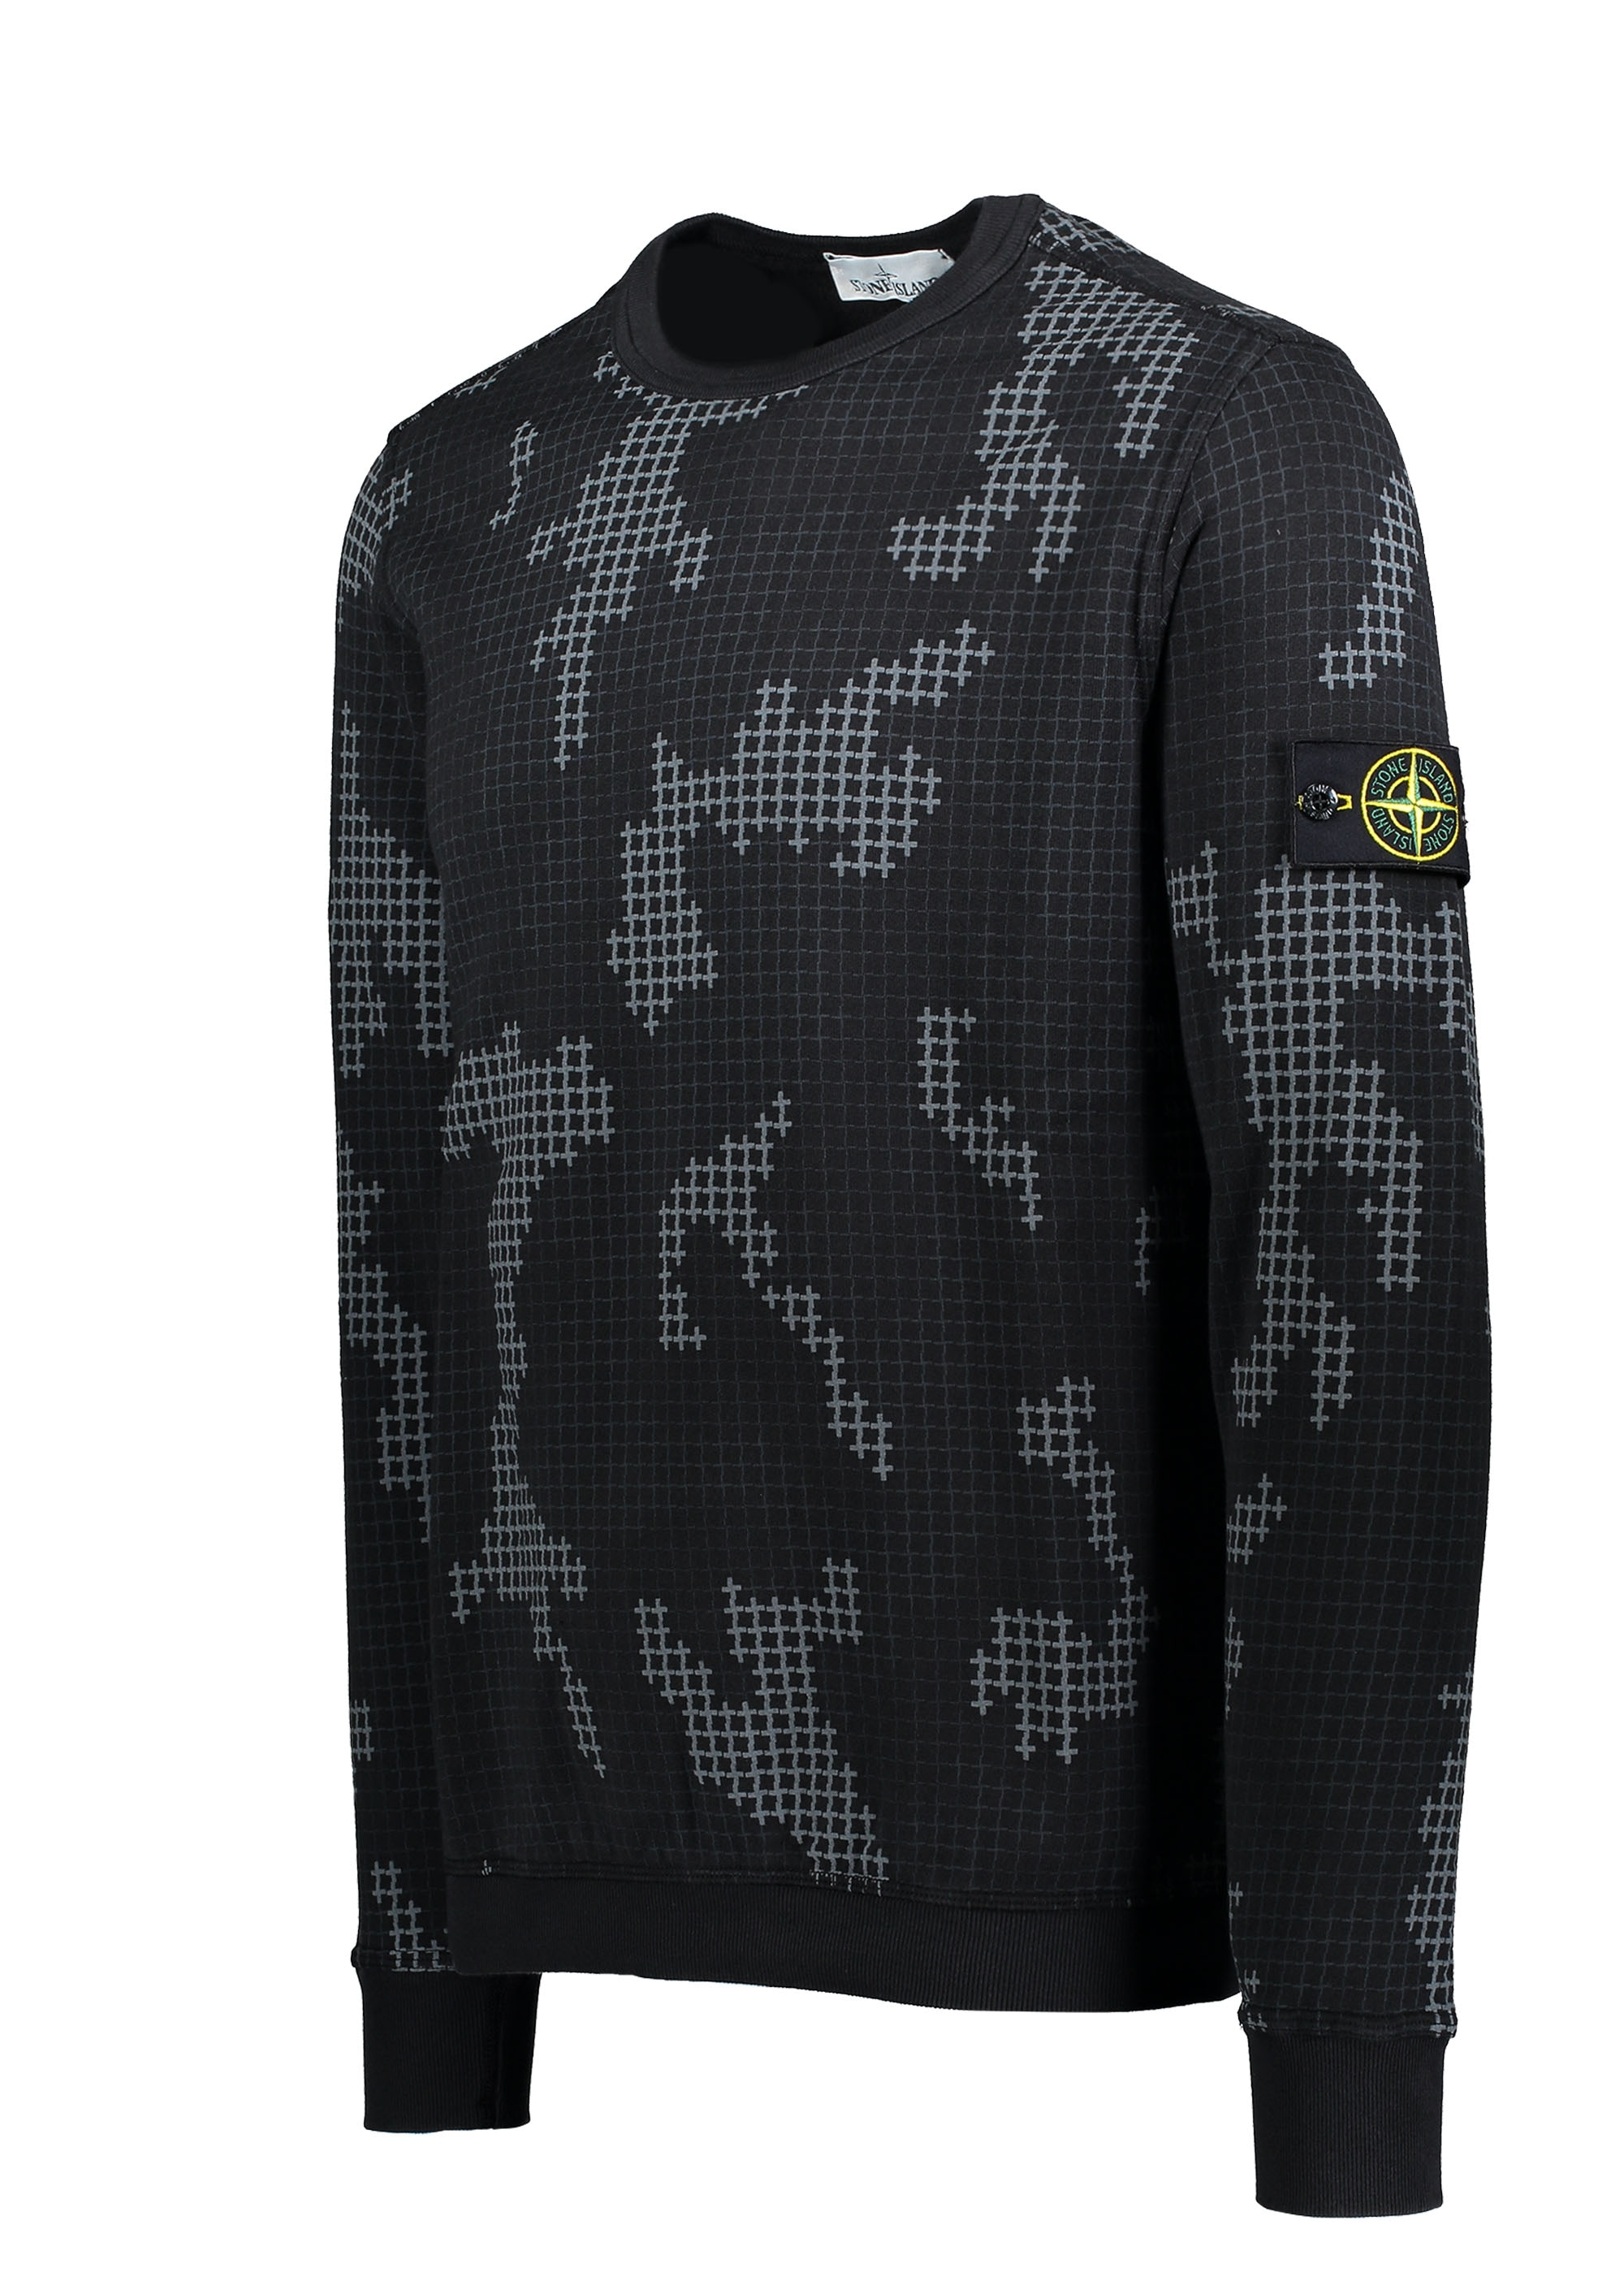 7613615d Stone Island Grid Camo Sweat - Black - Triads Mens from Triads UK